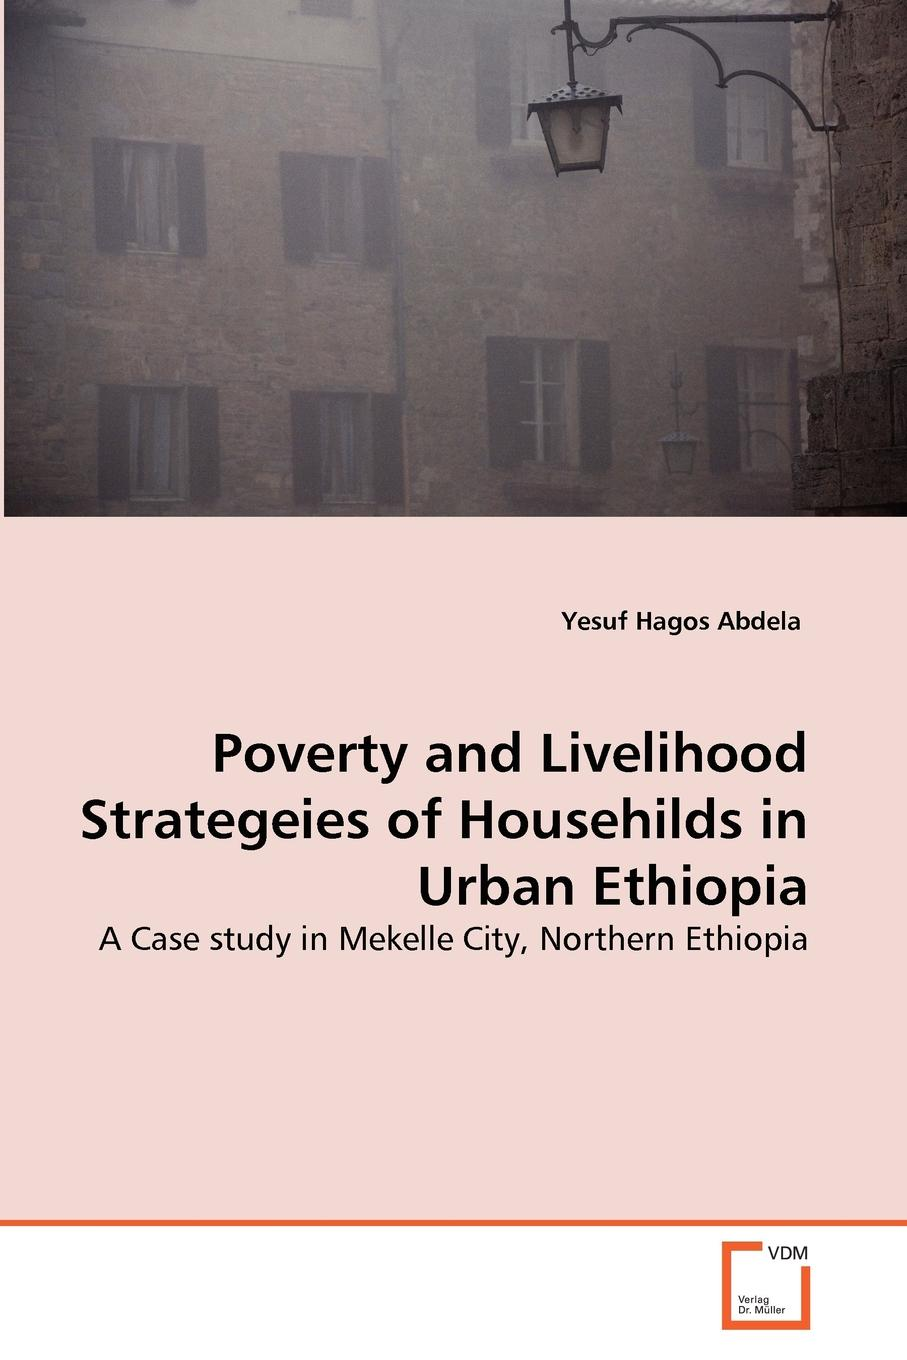 Yesuf Hagos Abdela Poverty and Livelihood Strategeies of Househilds in Urban Ethiopia demoniq magnetic marissa черное короткое платье с цветочной вышивкой